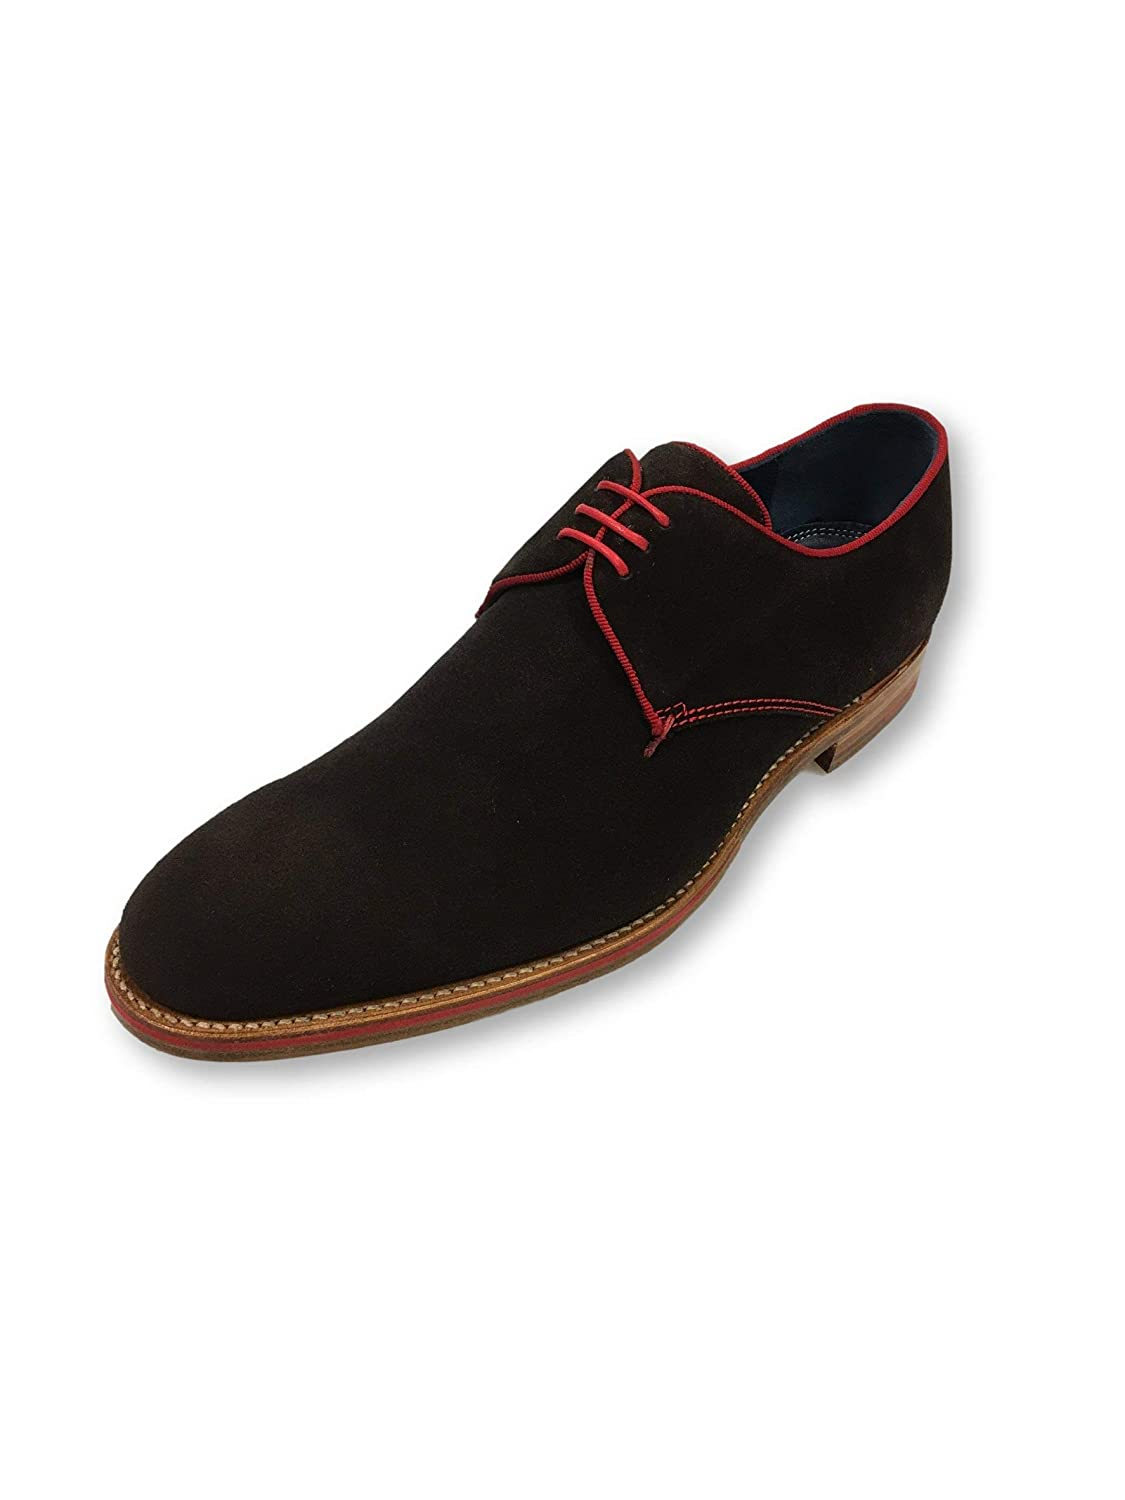 - Barker Rebus shoes in Chocolate Suede and red Size 9 Suede